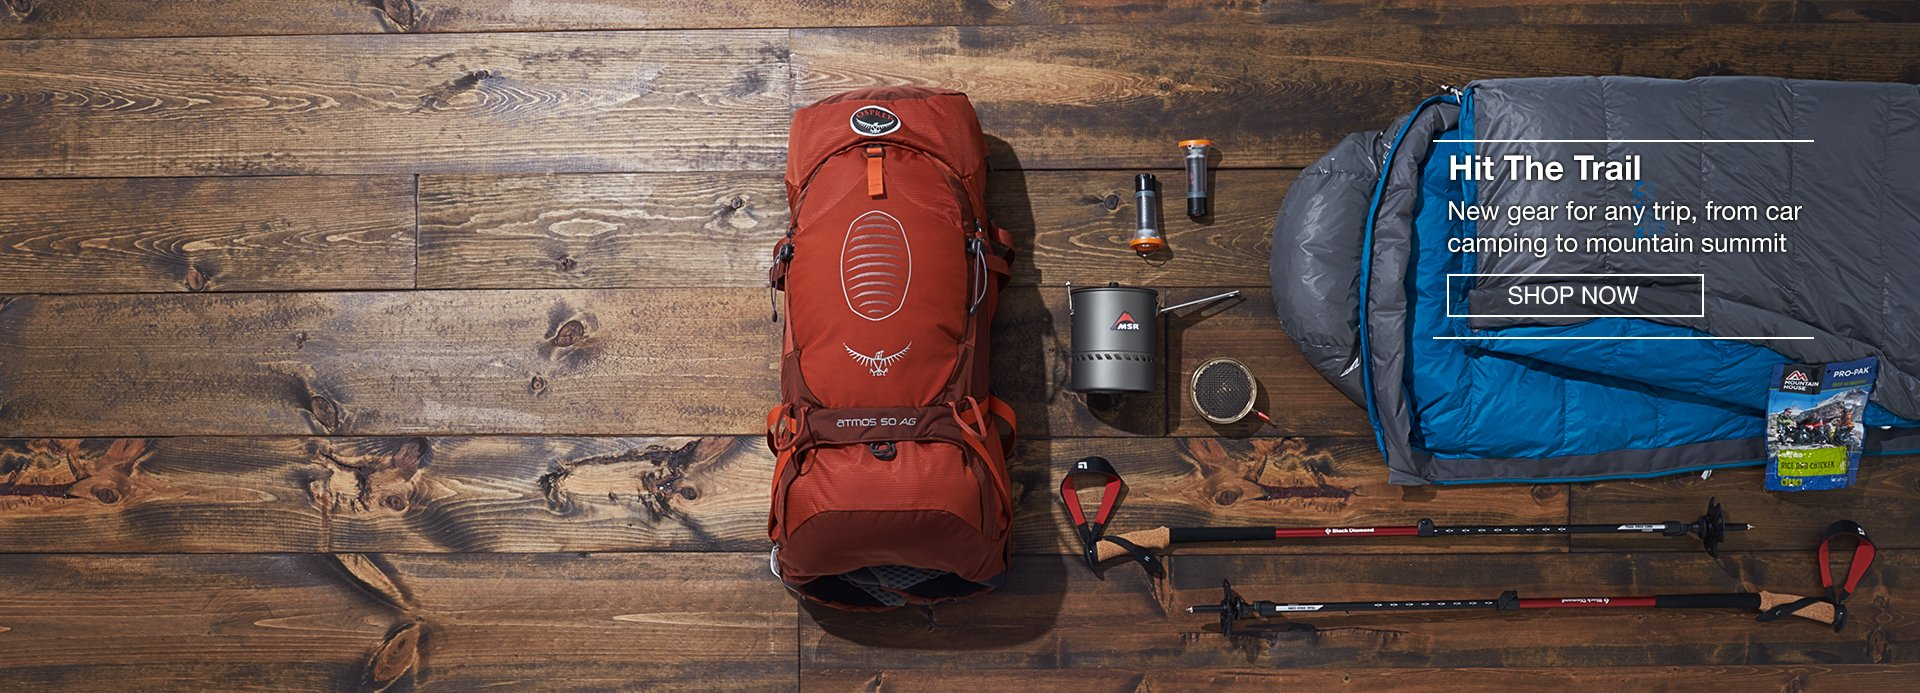 New Arrivals and Bestsellers in Outdoor Recreation on Amazon